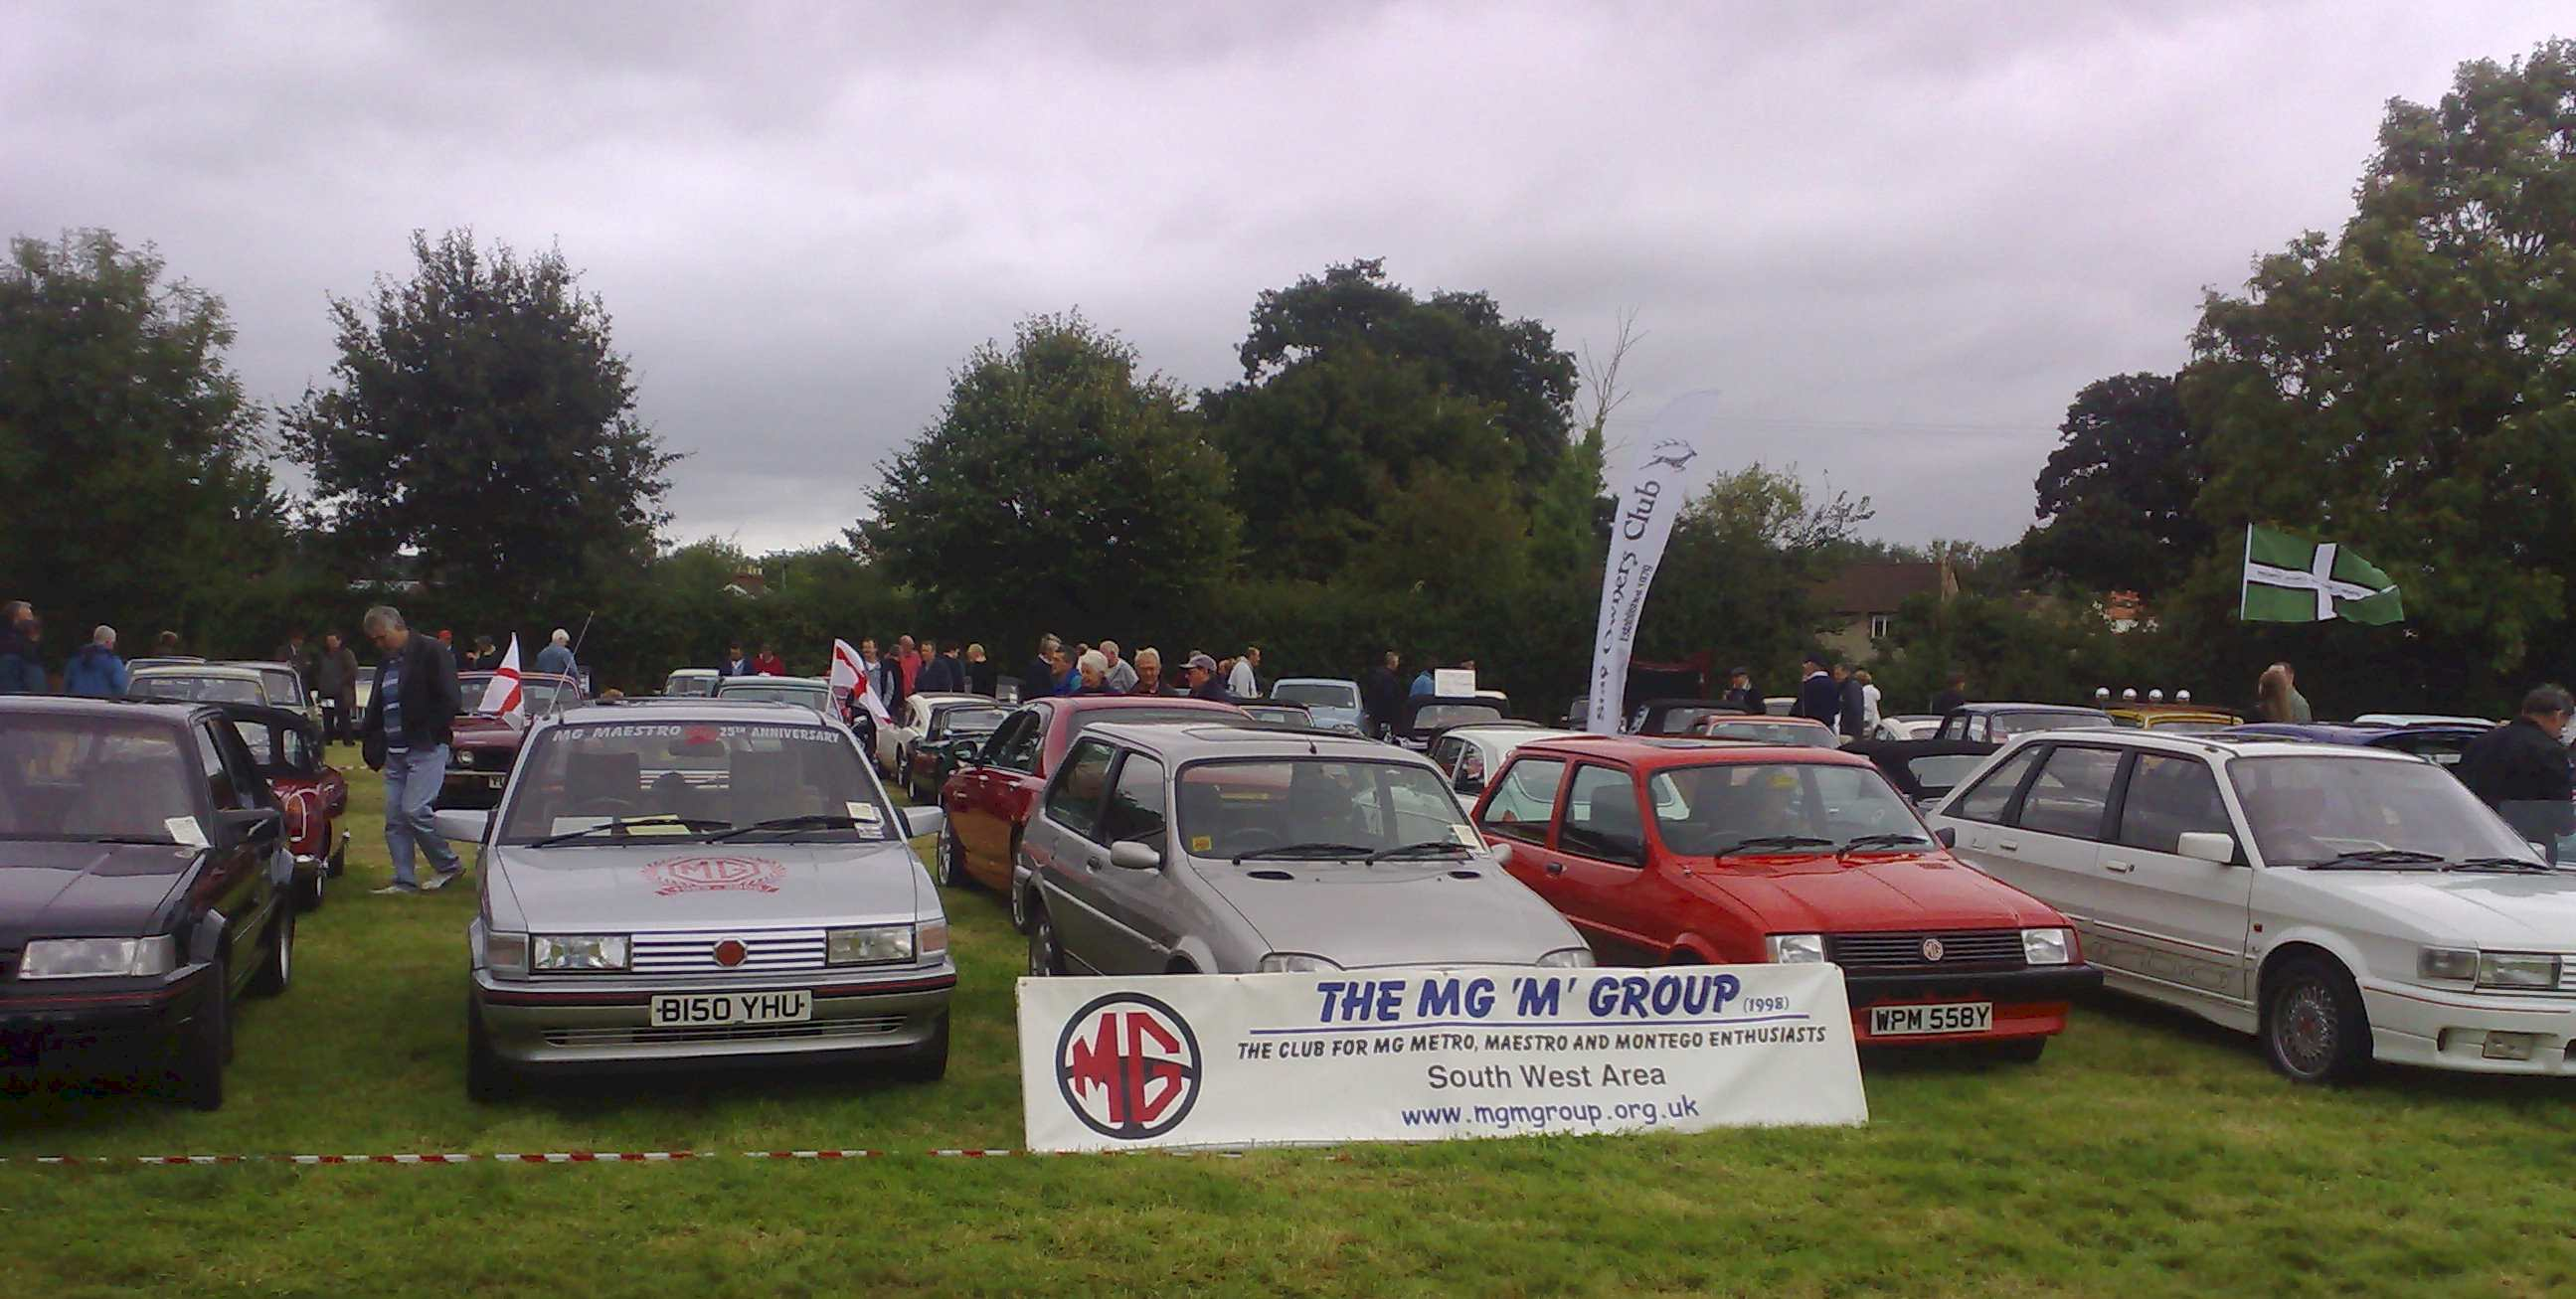 MG 'M' cars join the other MGs to give a good model range to compete with the other attendees.